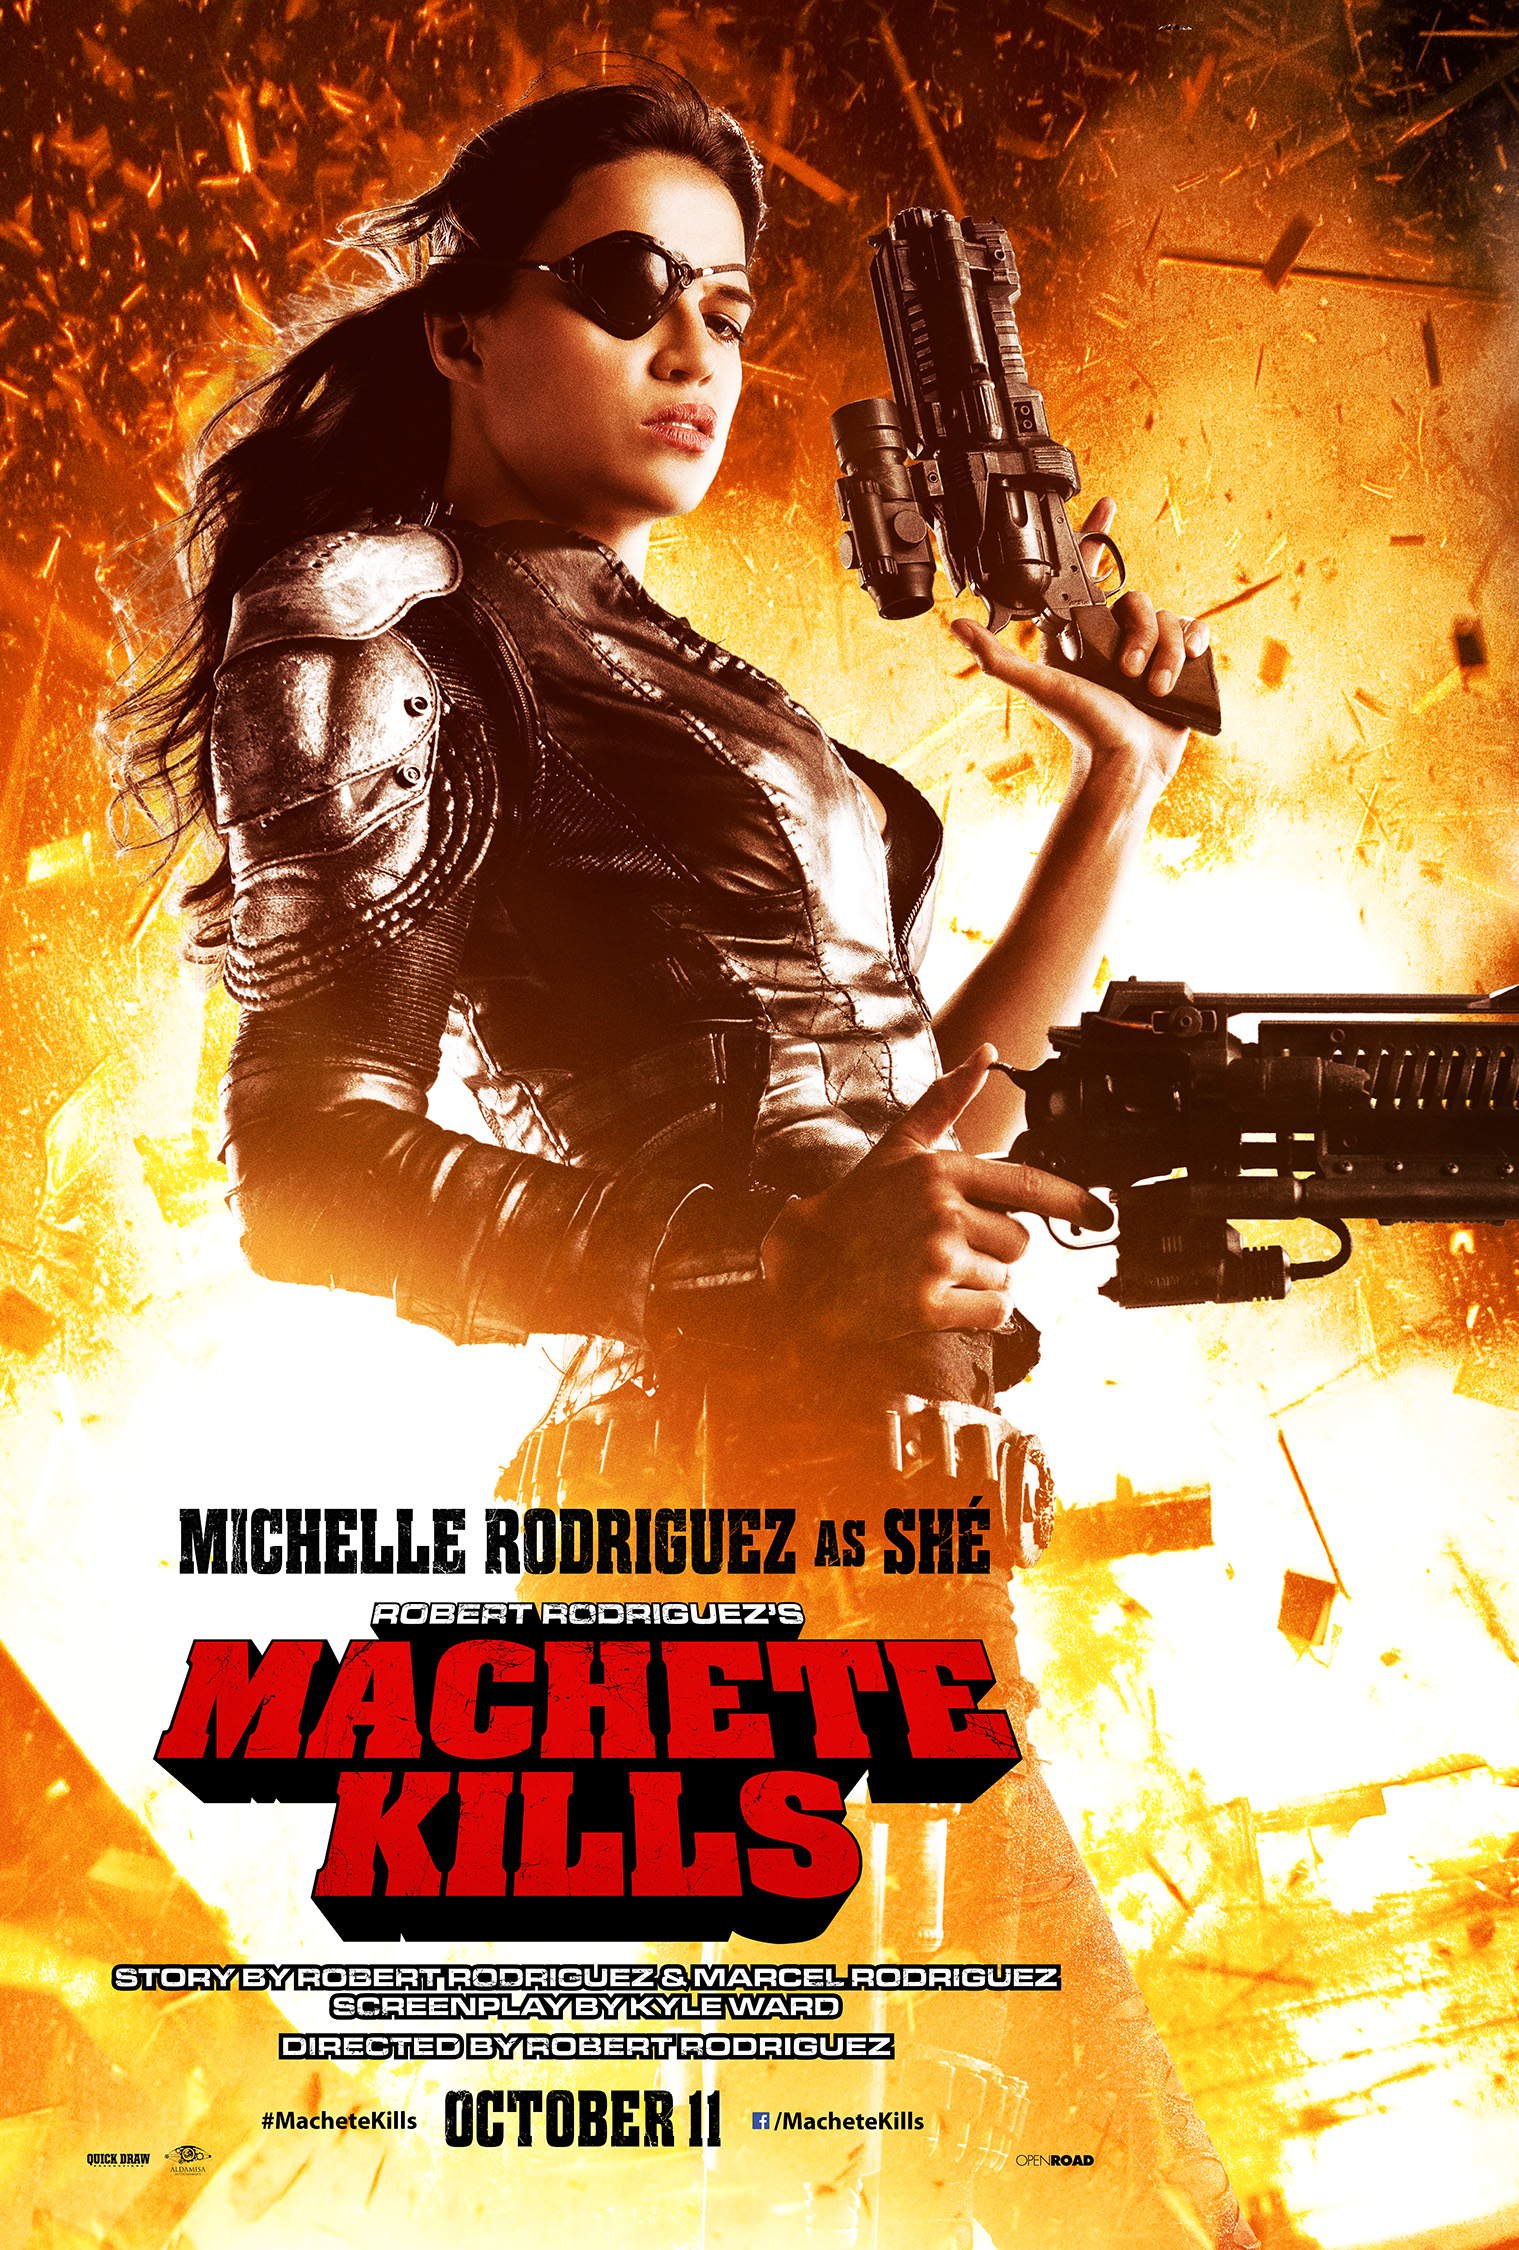 machete kills MC2 MICHELLE Final v017 oct11 rgb Machete Kills His Co Stars In New Official Posters and Stills